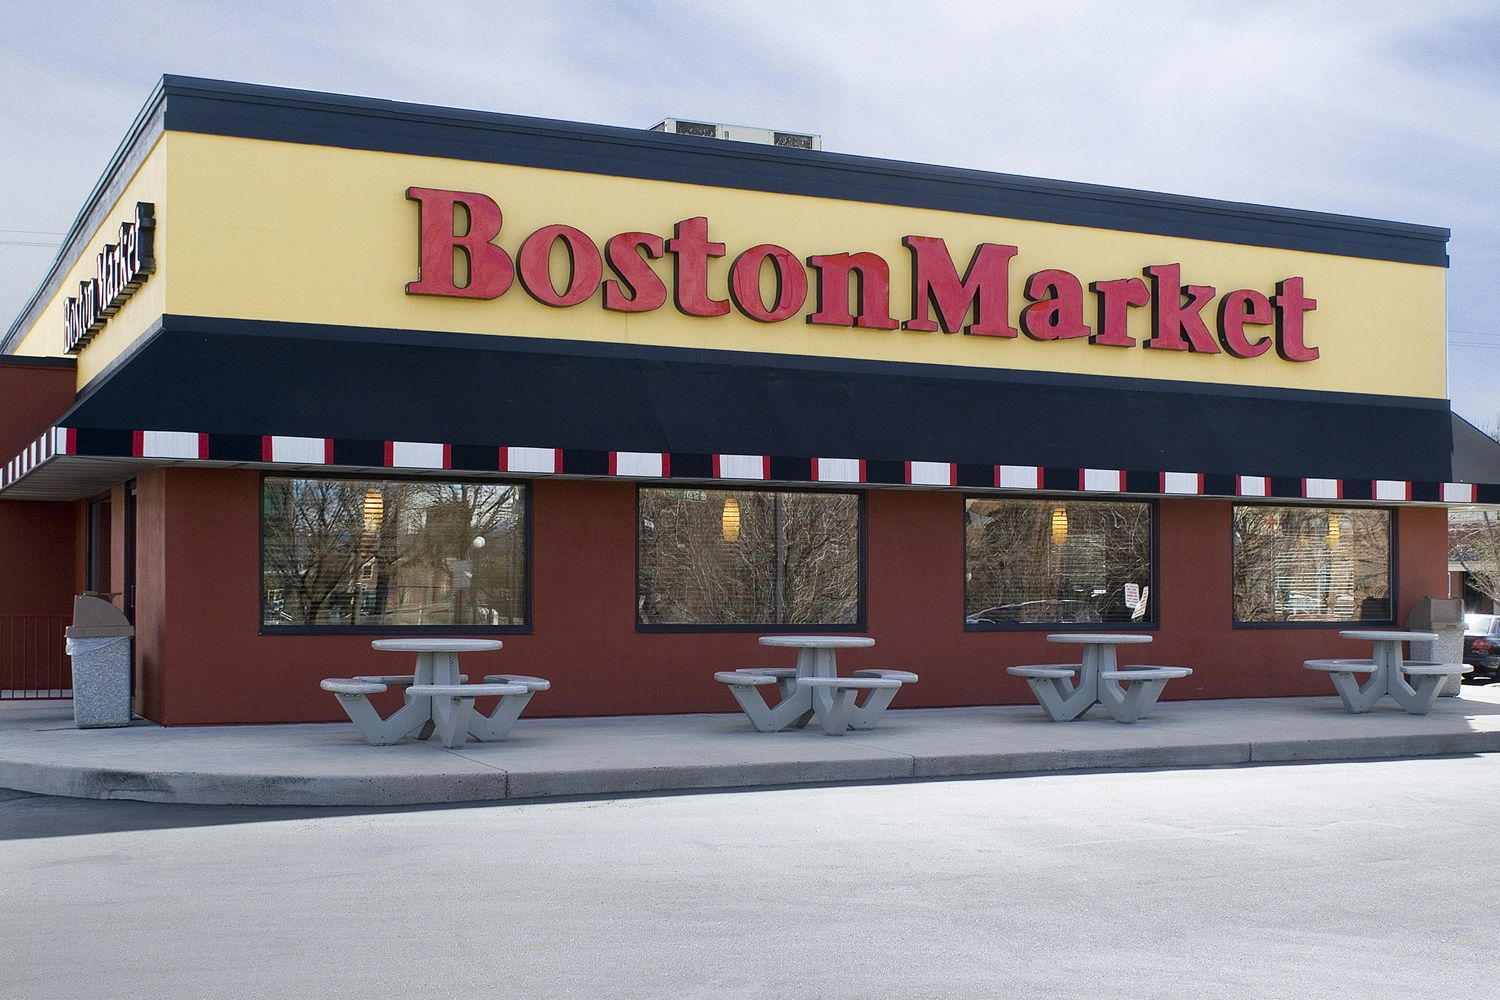 Boston Market Expands Its Longstanding Presence In New York Metropolitan Area With Three New Restaurants In 2017